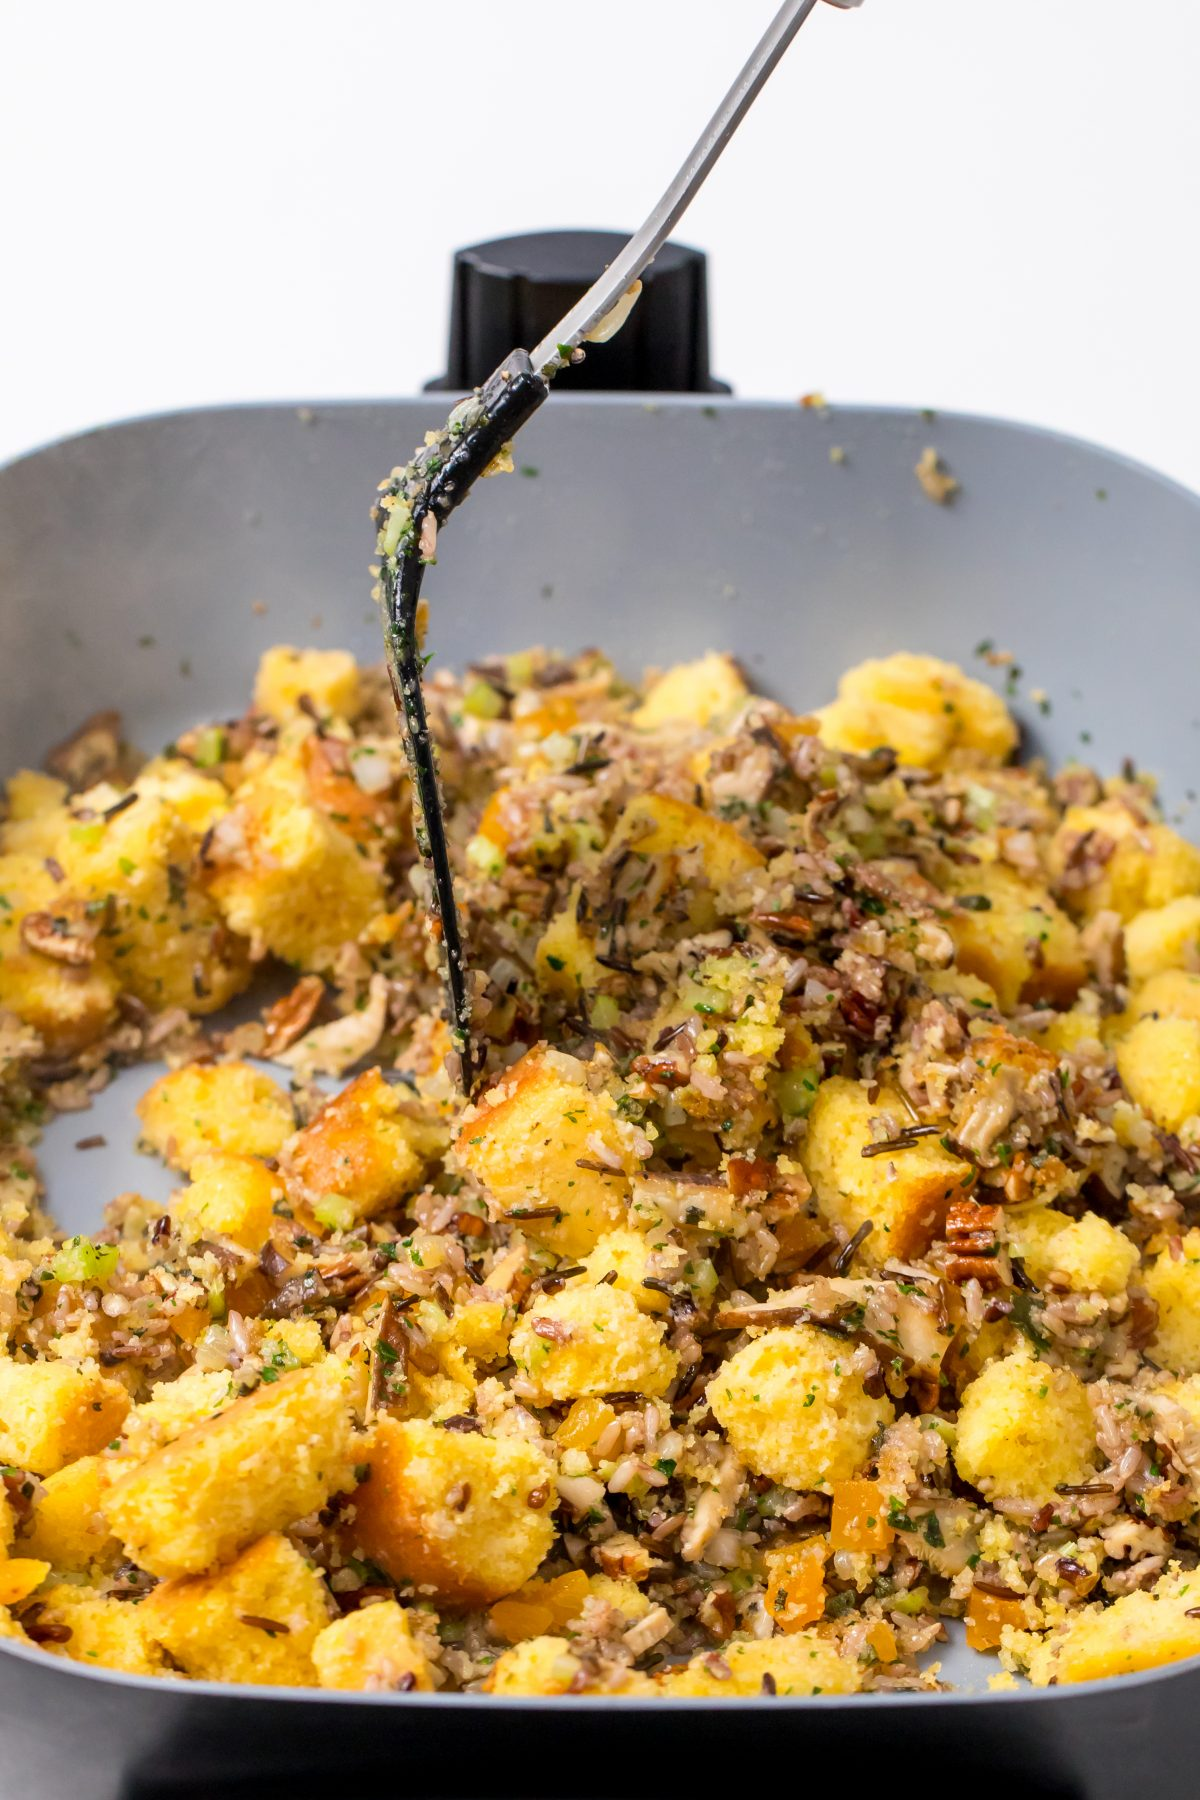 Combine the stuffing ingredients in the skillet